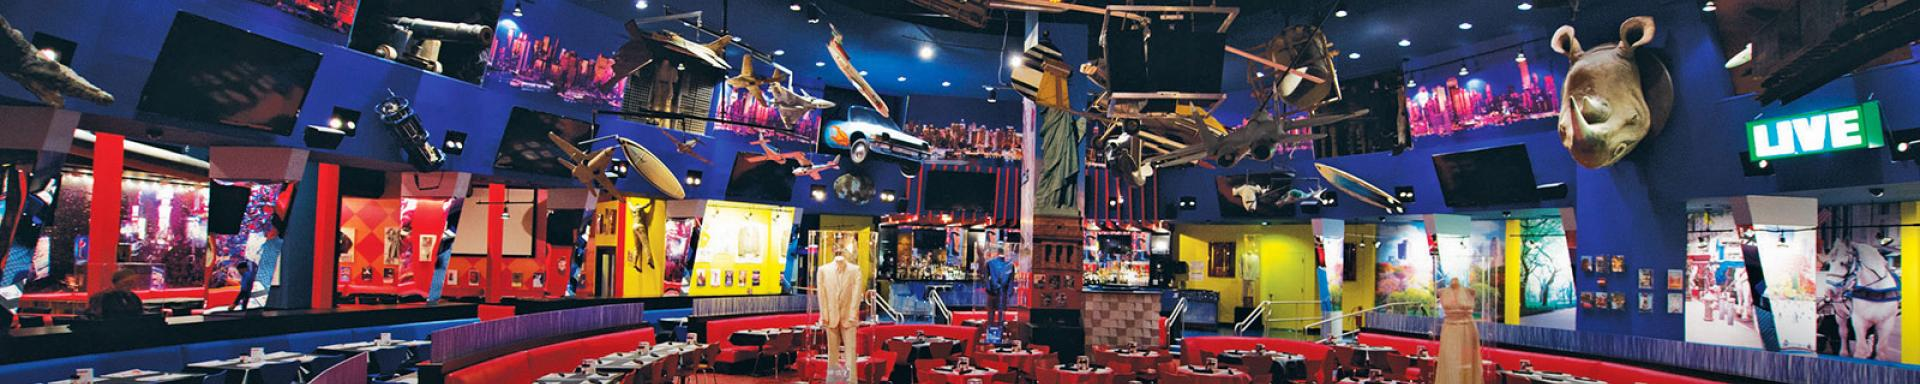 FREE Planet Hollywood New York $10 Voucher with all New York Bookings